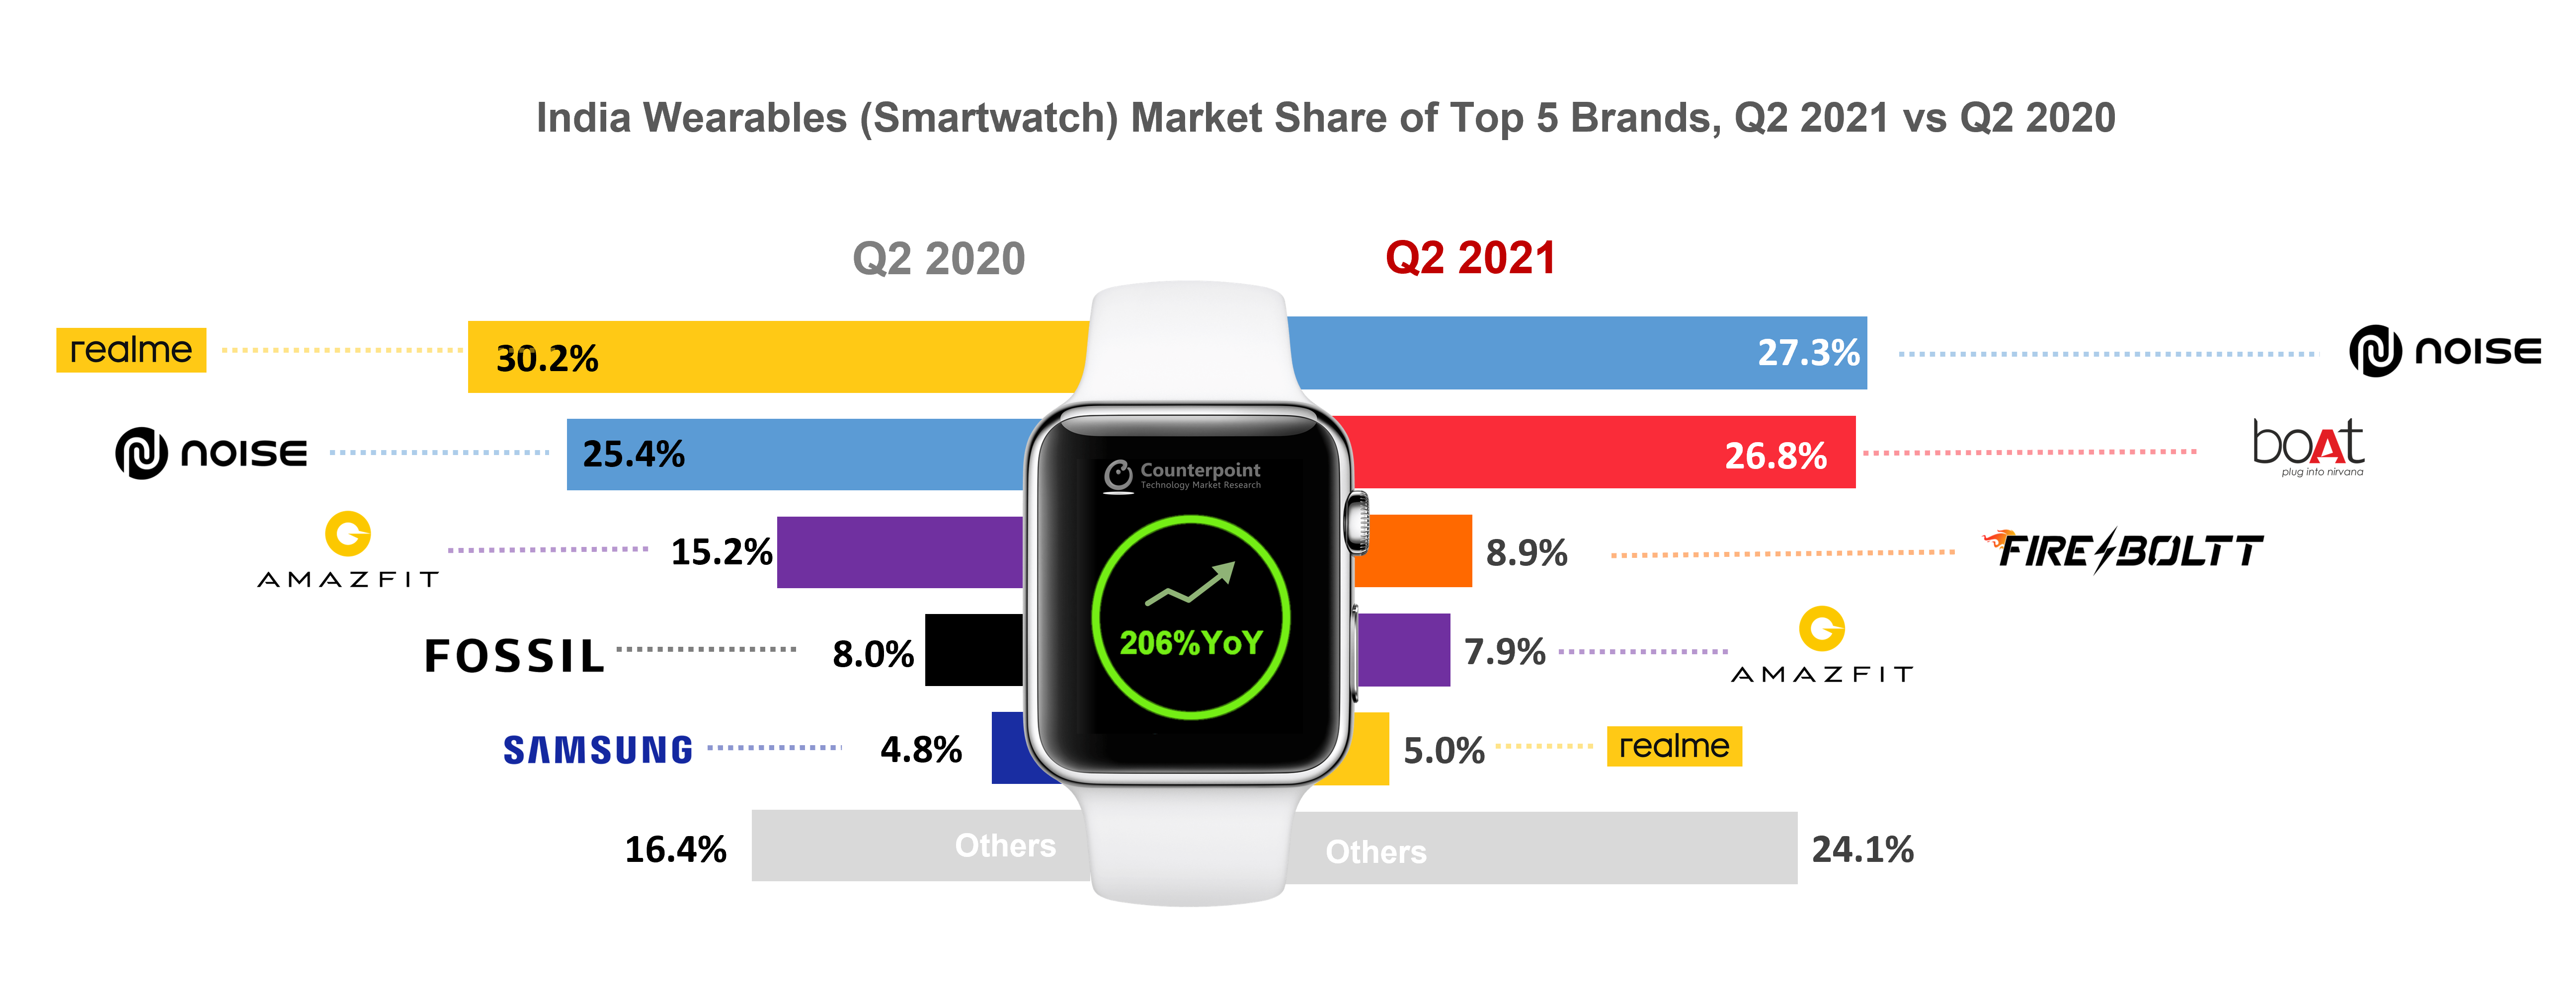 India Wearables (Smartwatch) Market Share of Top 5 Brands, Q2 2021 vs Q2 2020